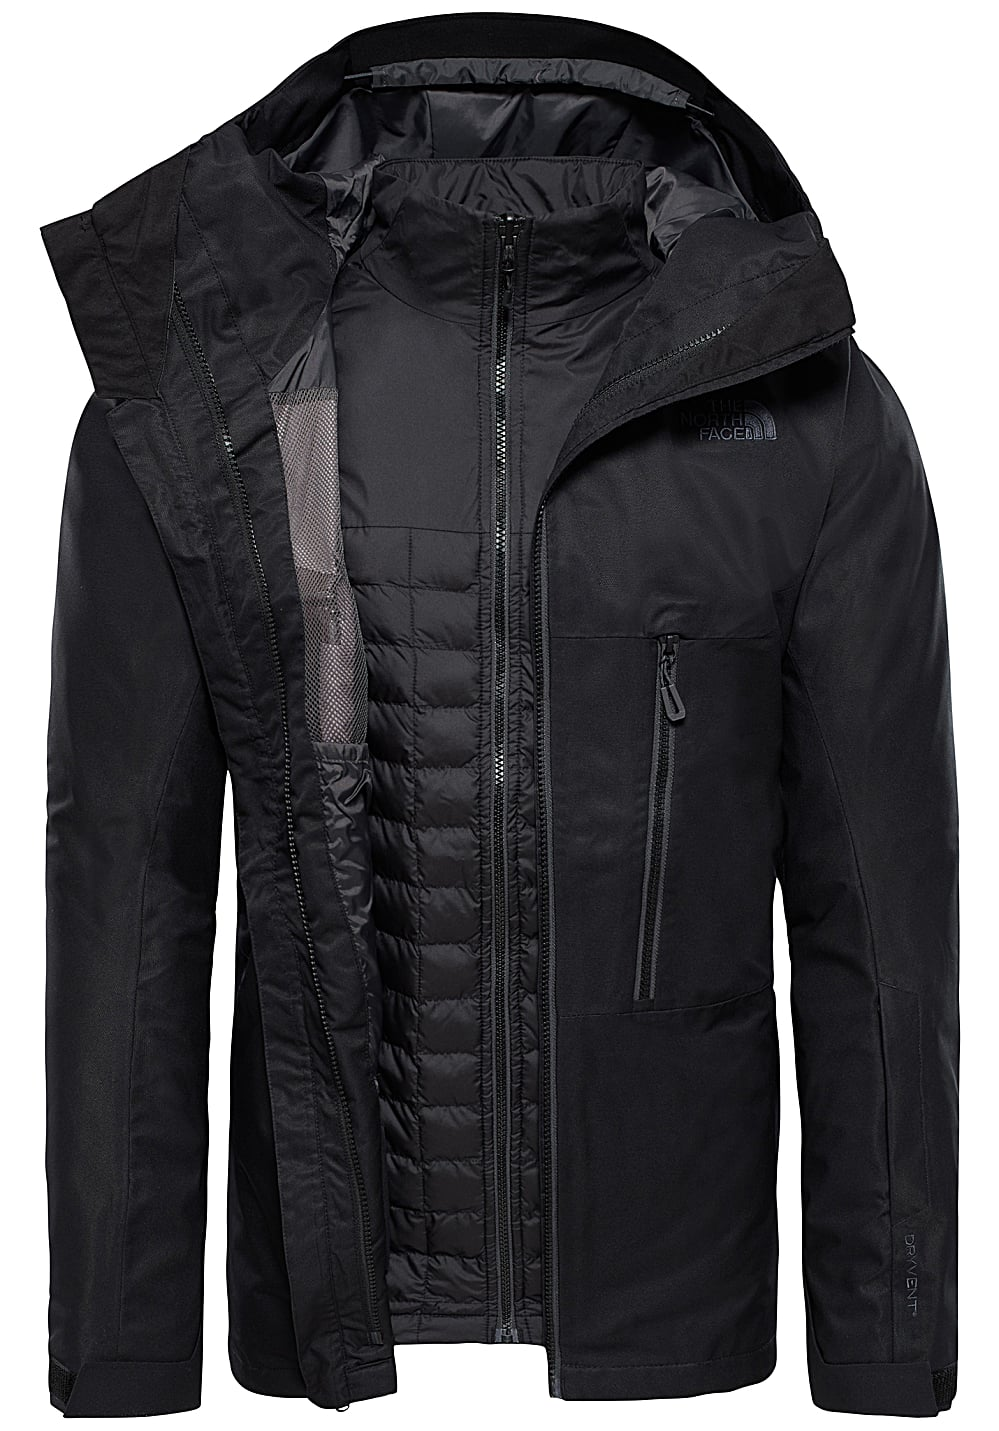 3e2a40f86 THE NORTH FACE Thermoball Snow Triclimate - Ski Jacket for Men - Black